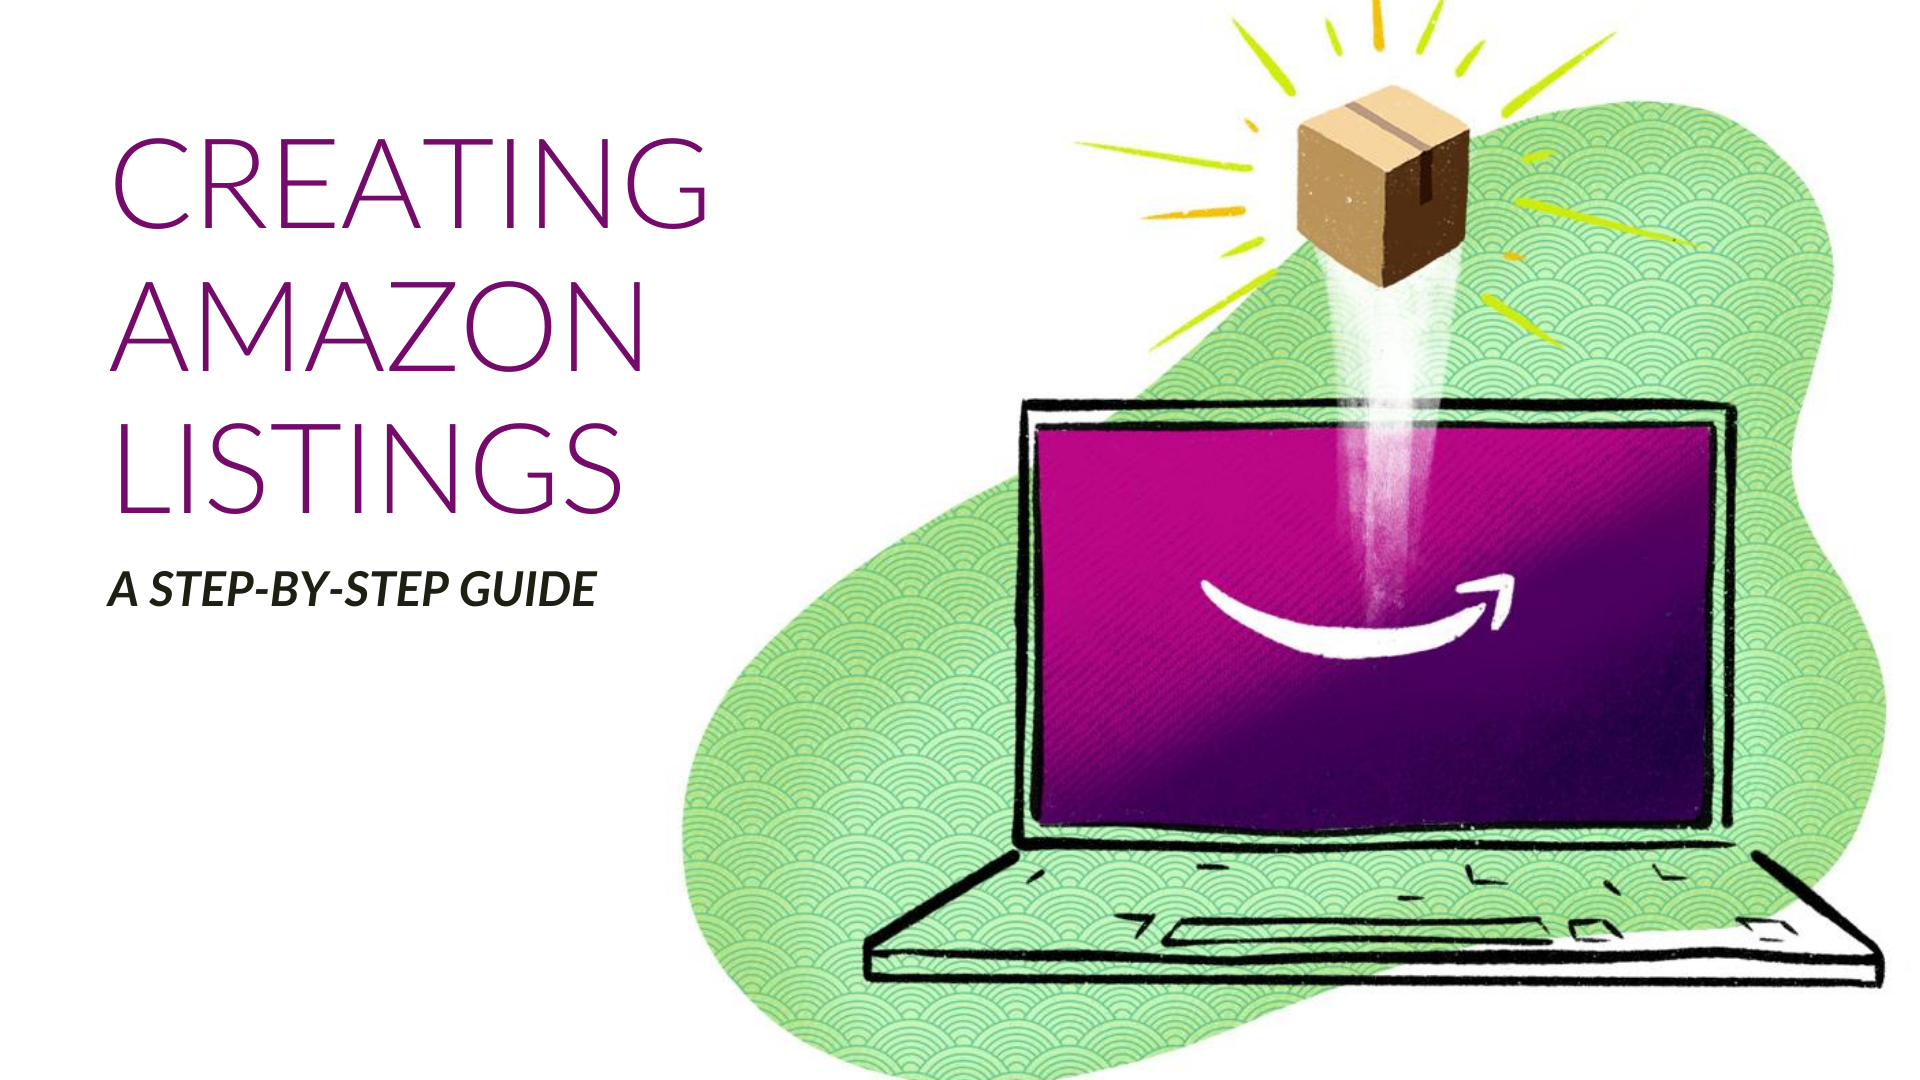 A Step-By-Step Guide to Creating Amazon Listings in Seller Central